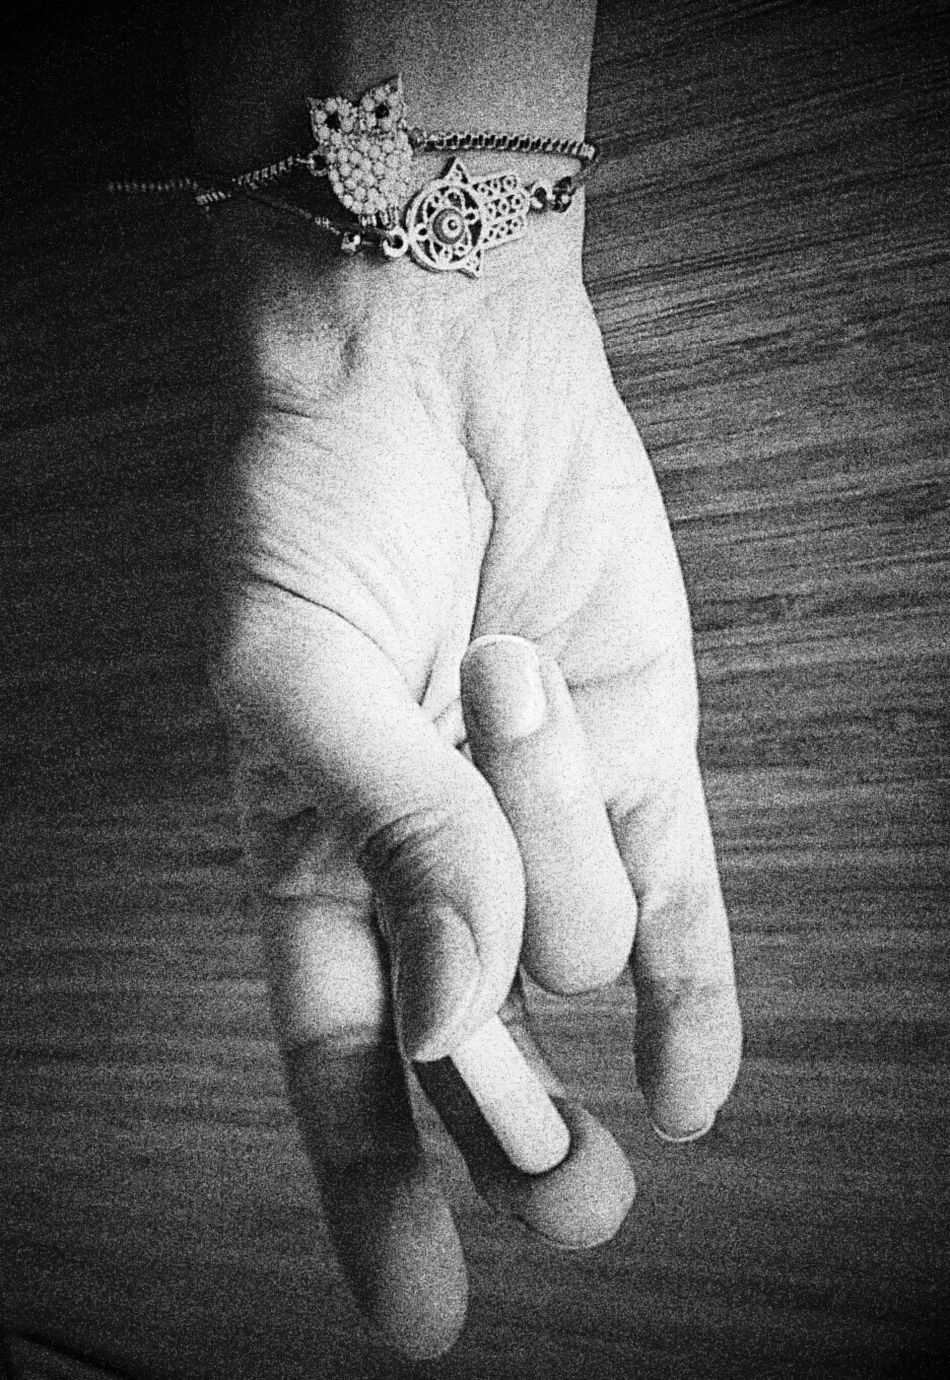 Hand Myhand EyeEm Best Shots Blackandwhite Blackandwhite Photography Owl Hamse Black & White Eyem Best Shots - Black + White OpenEdit Hand